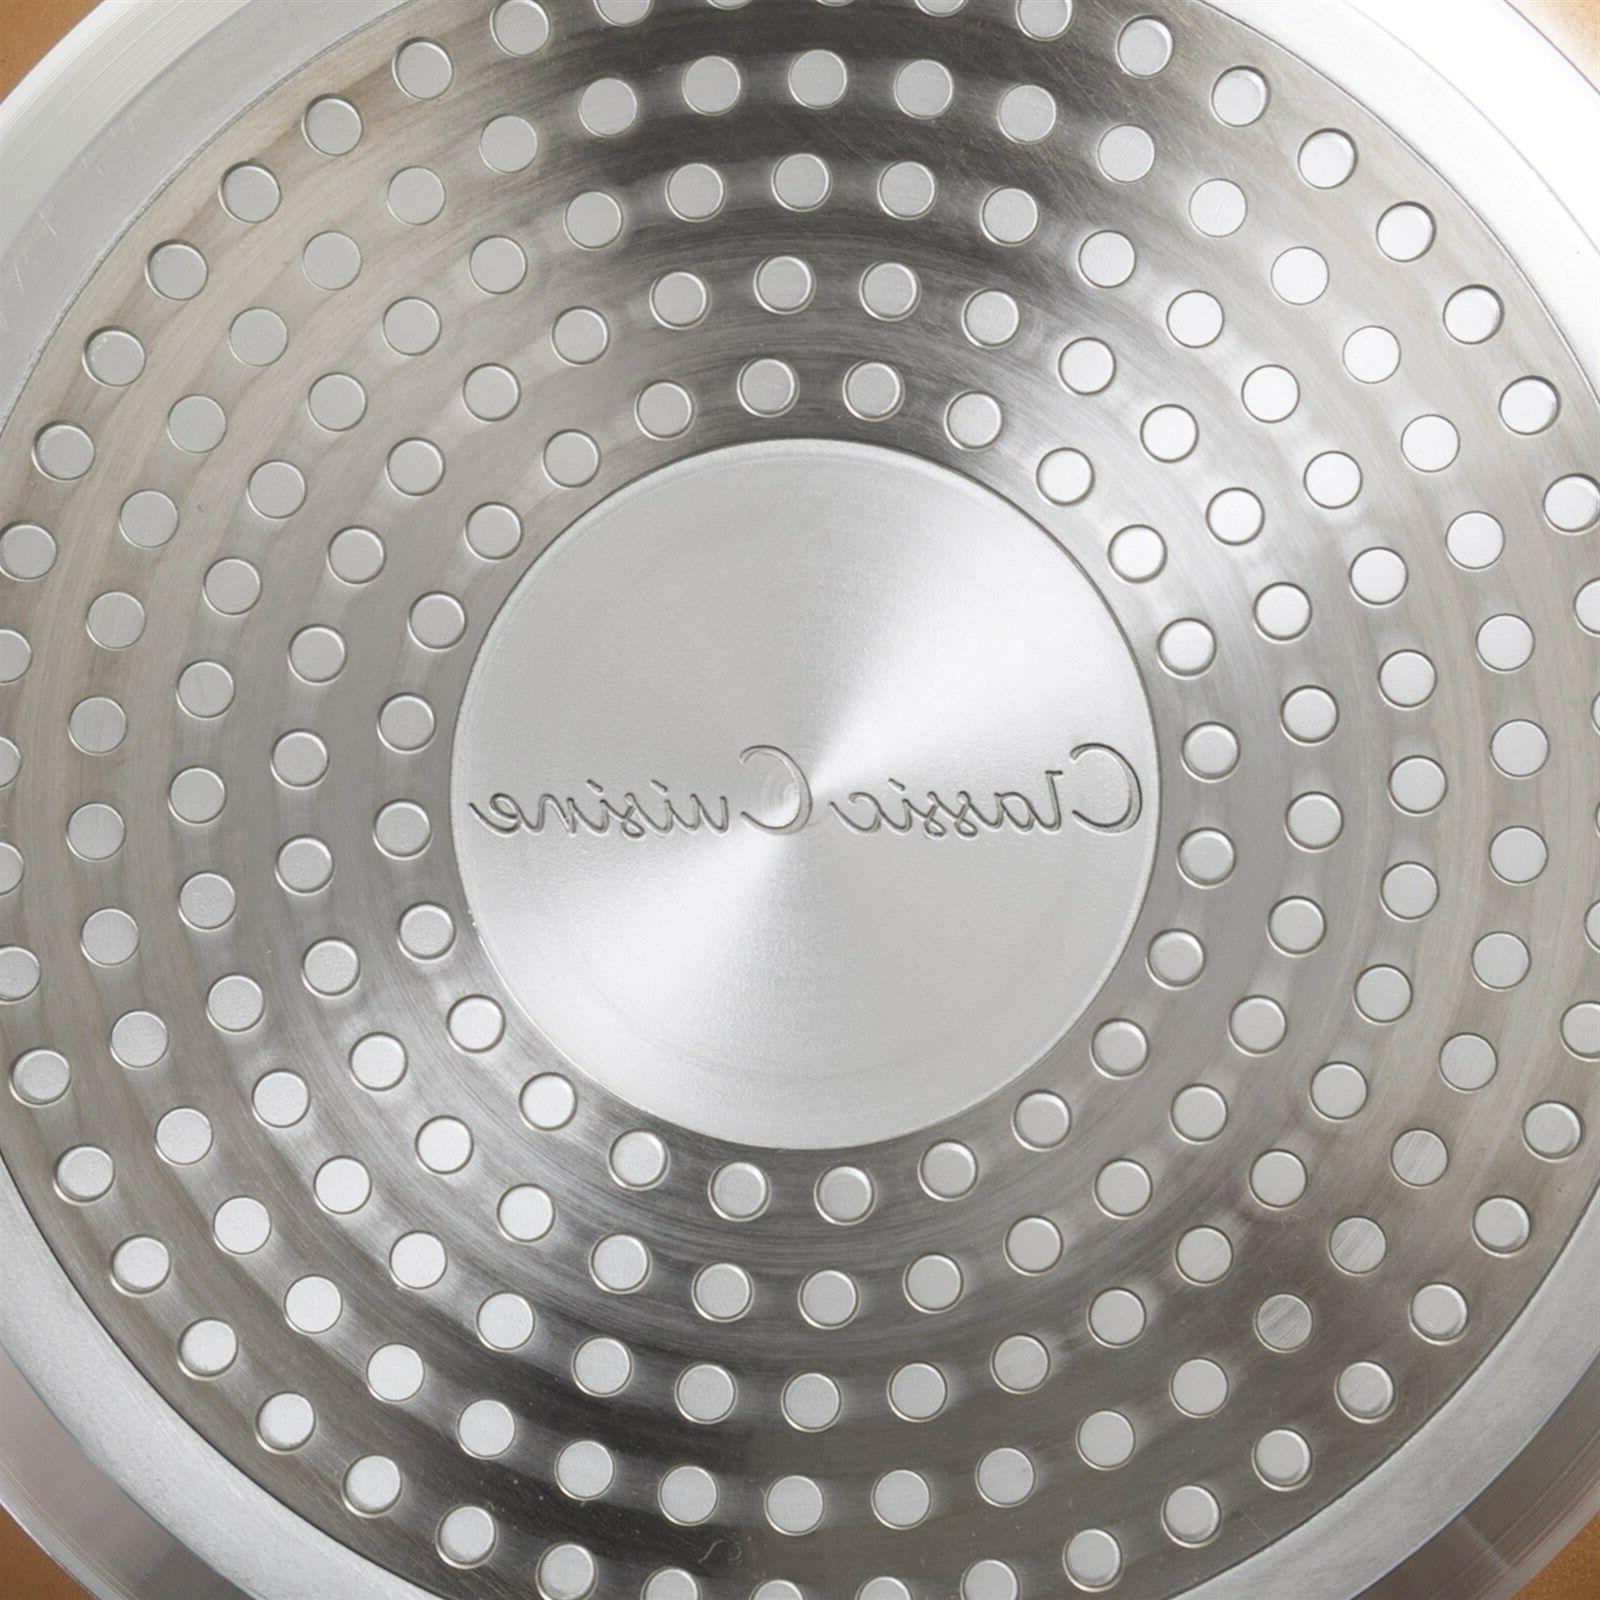 12 Inch Frying with Lid Induction Oven Stove Top Safe